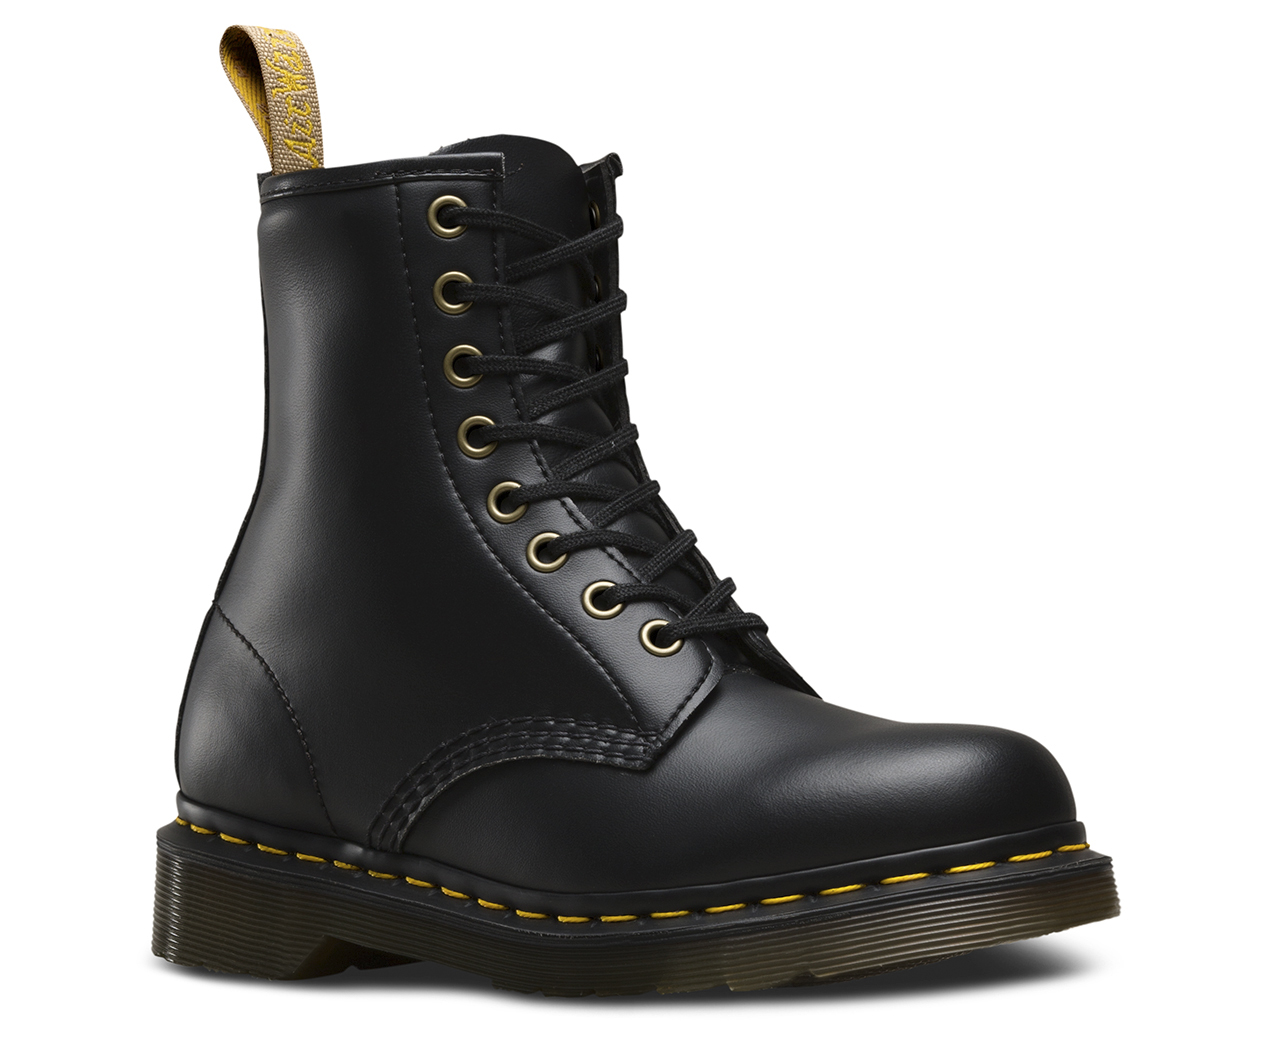 dr martens shoes & boots products found With a history of self-expression and rebellious individuality, Dr. Martens deserve a place in everyone's shoe collection.